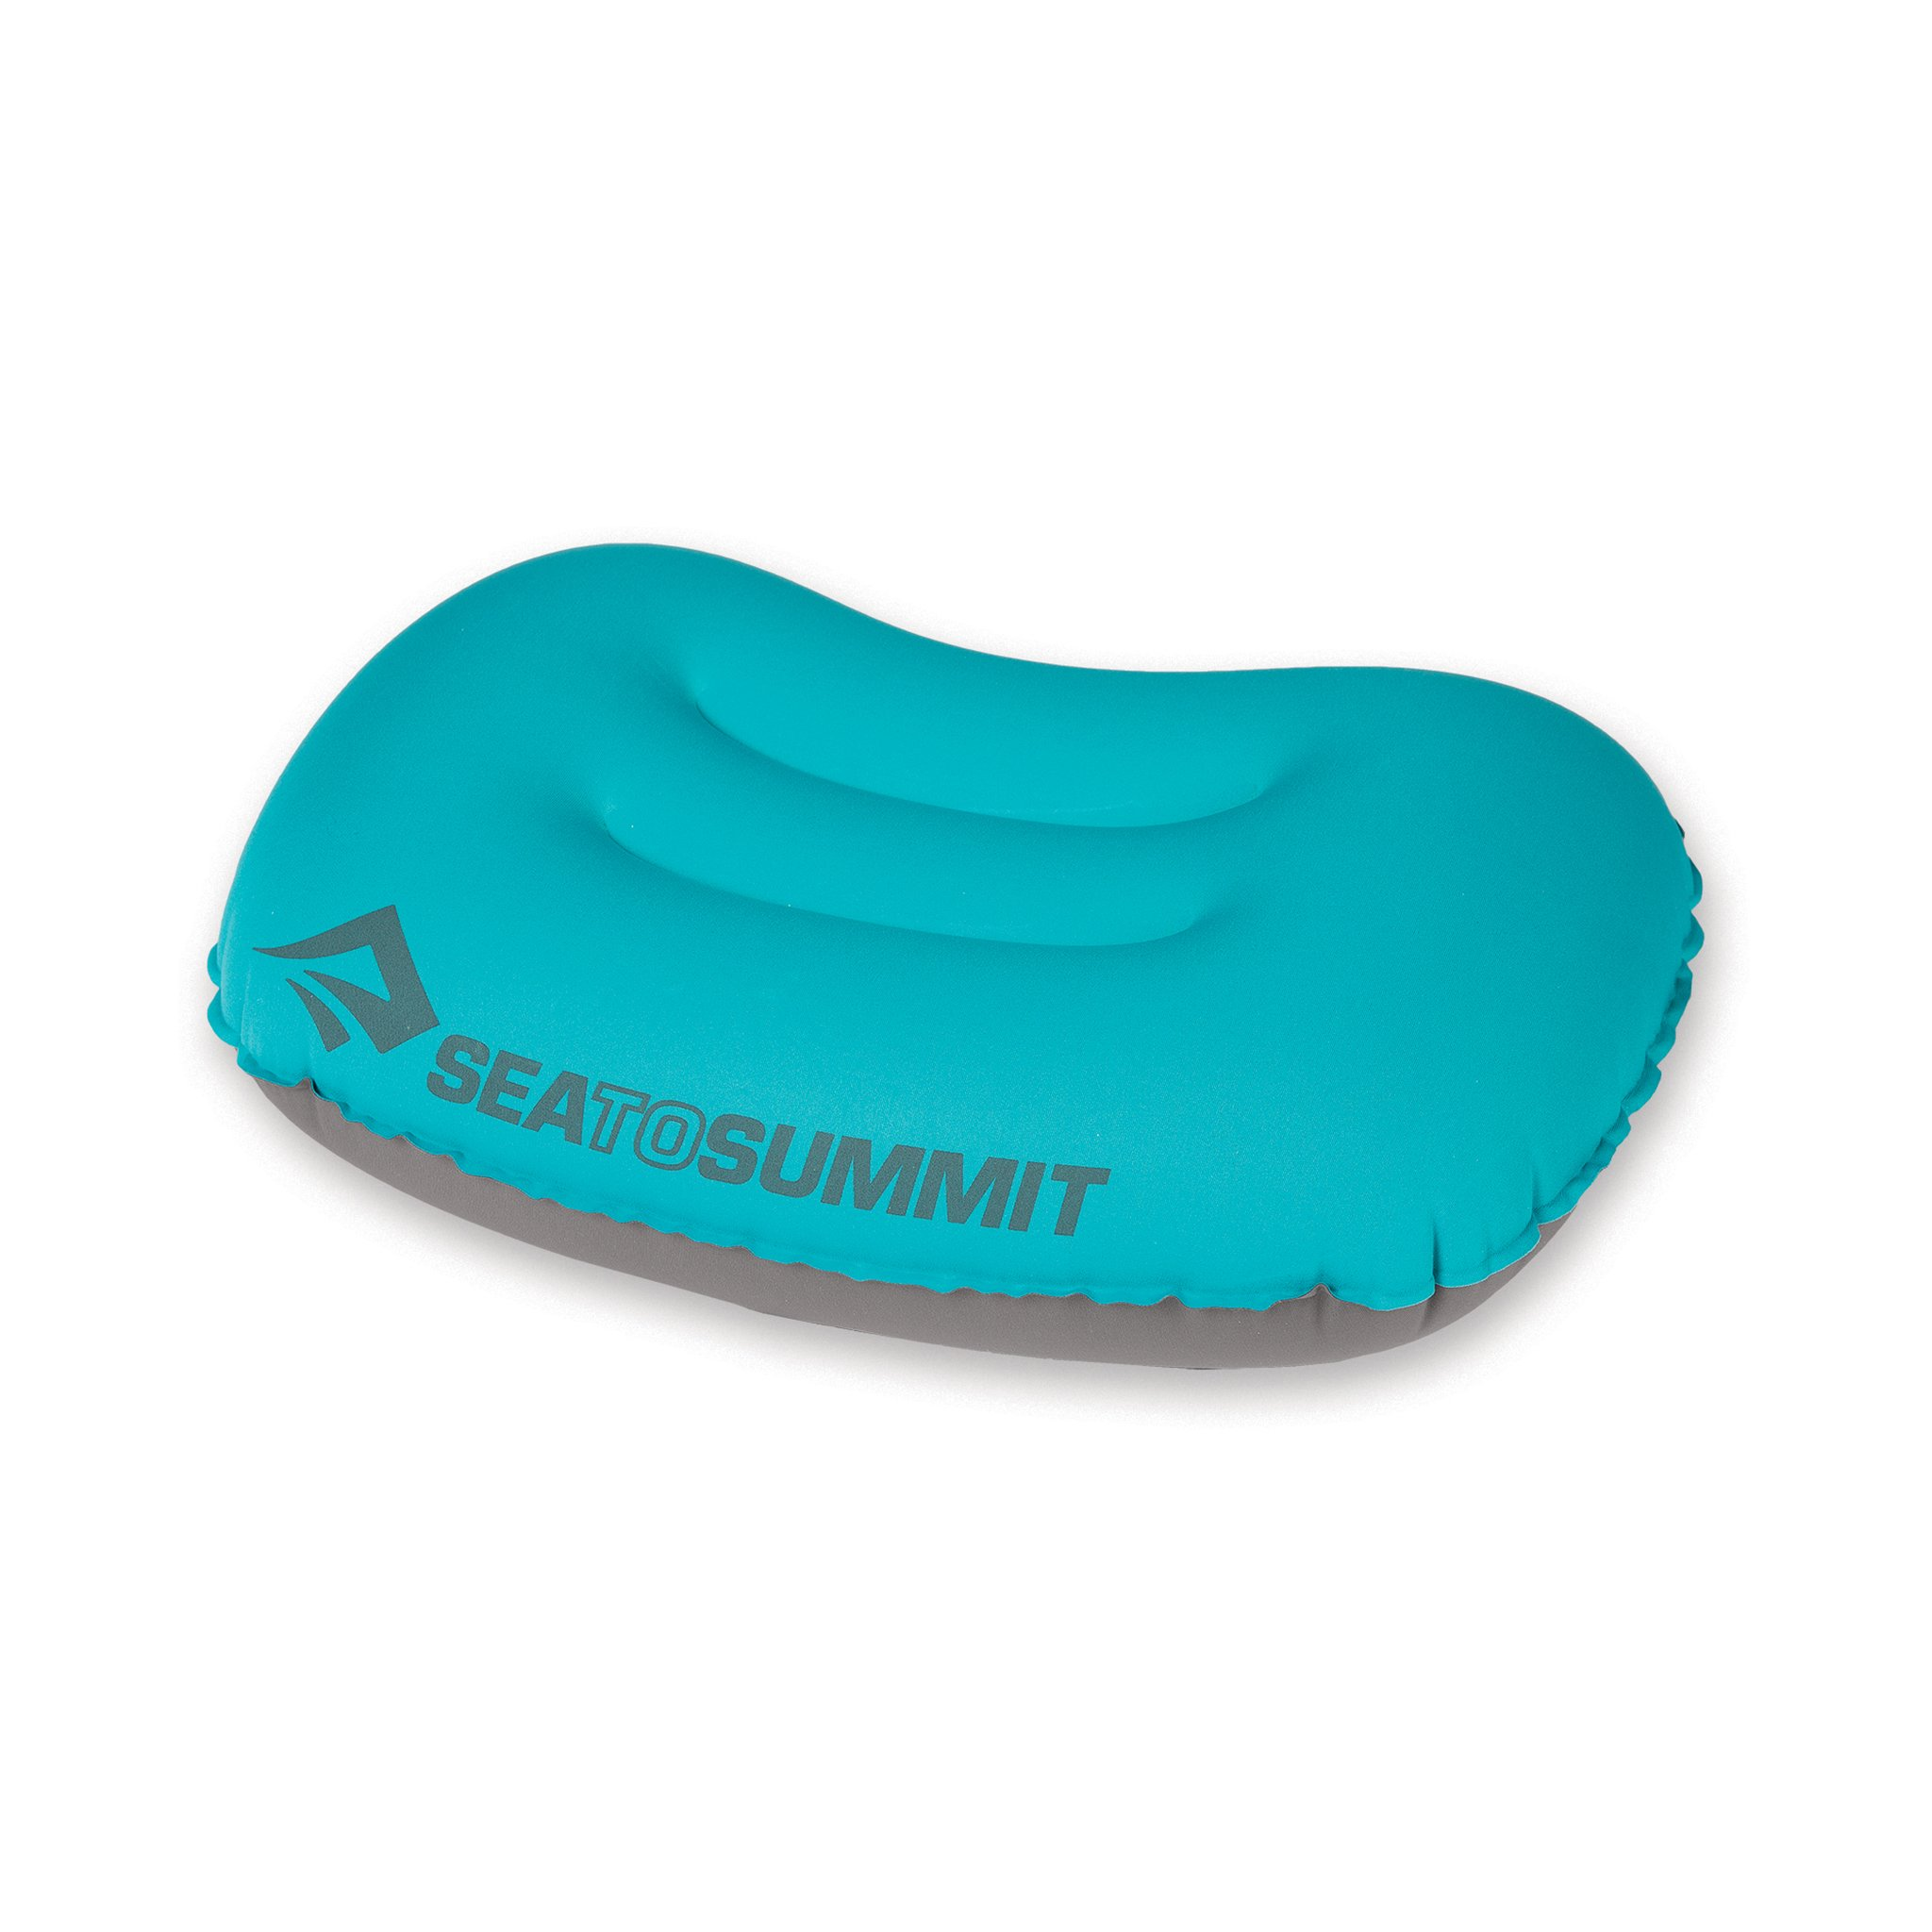 Sea To Summit Pillow - Bottom line, sleep is important. If you have trouble sleeping in the backcountry, give this pillow a try. I did, and I'll never again go without.